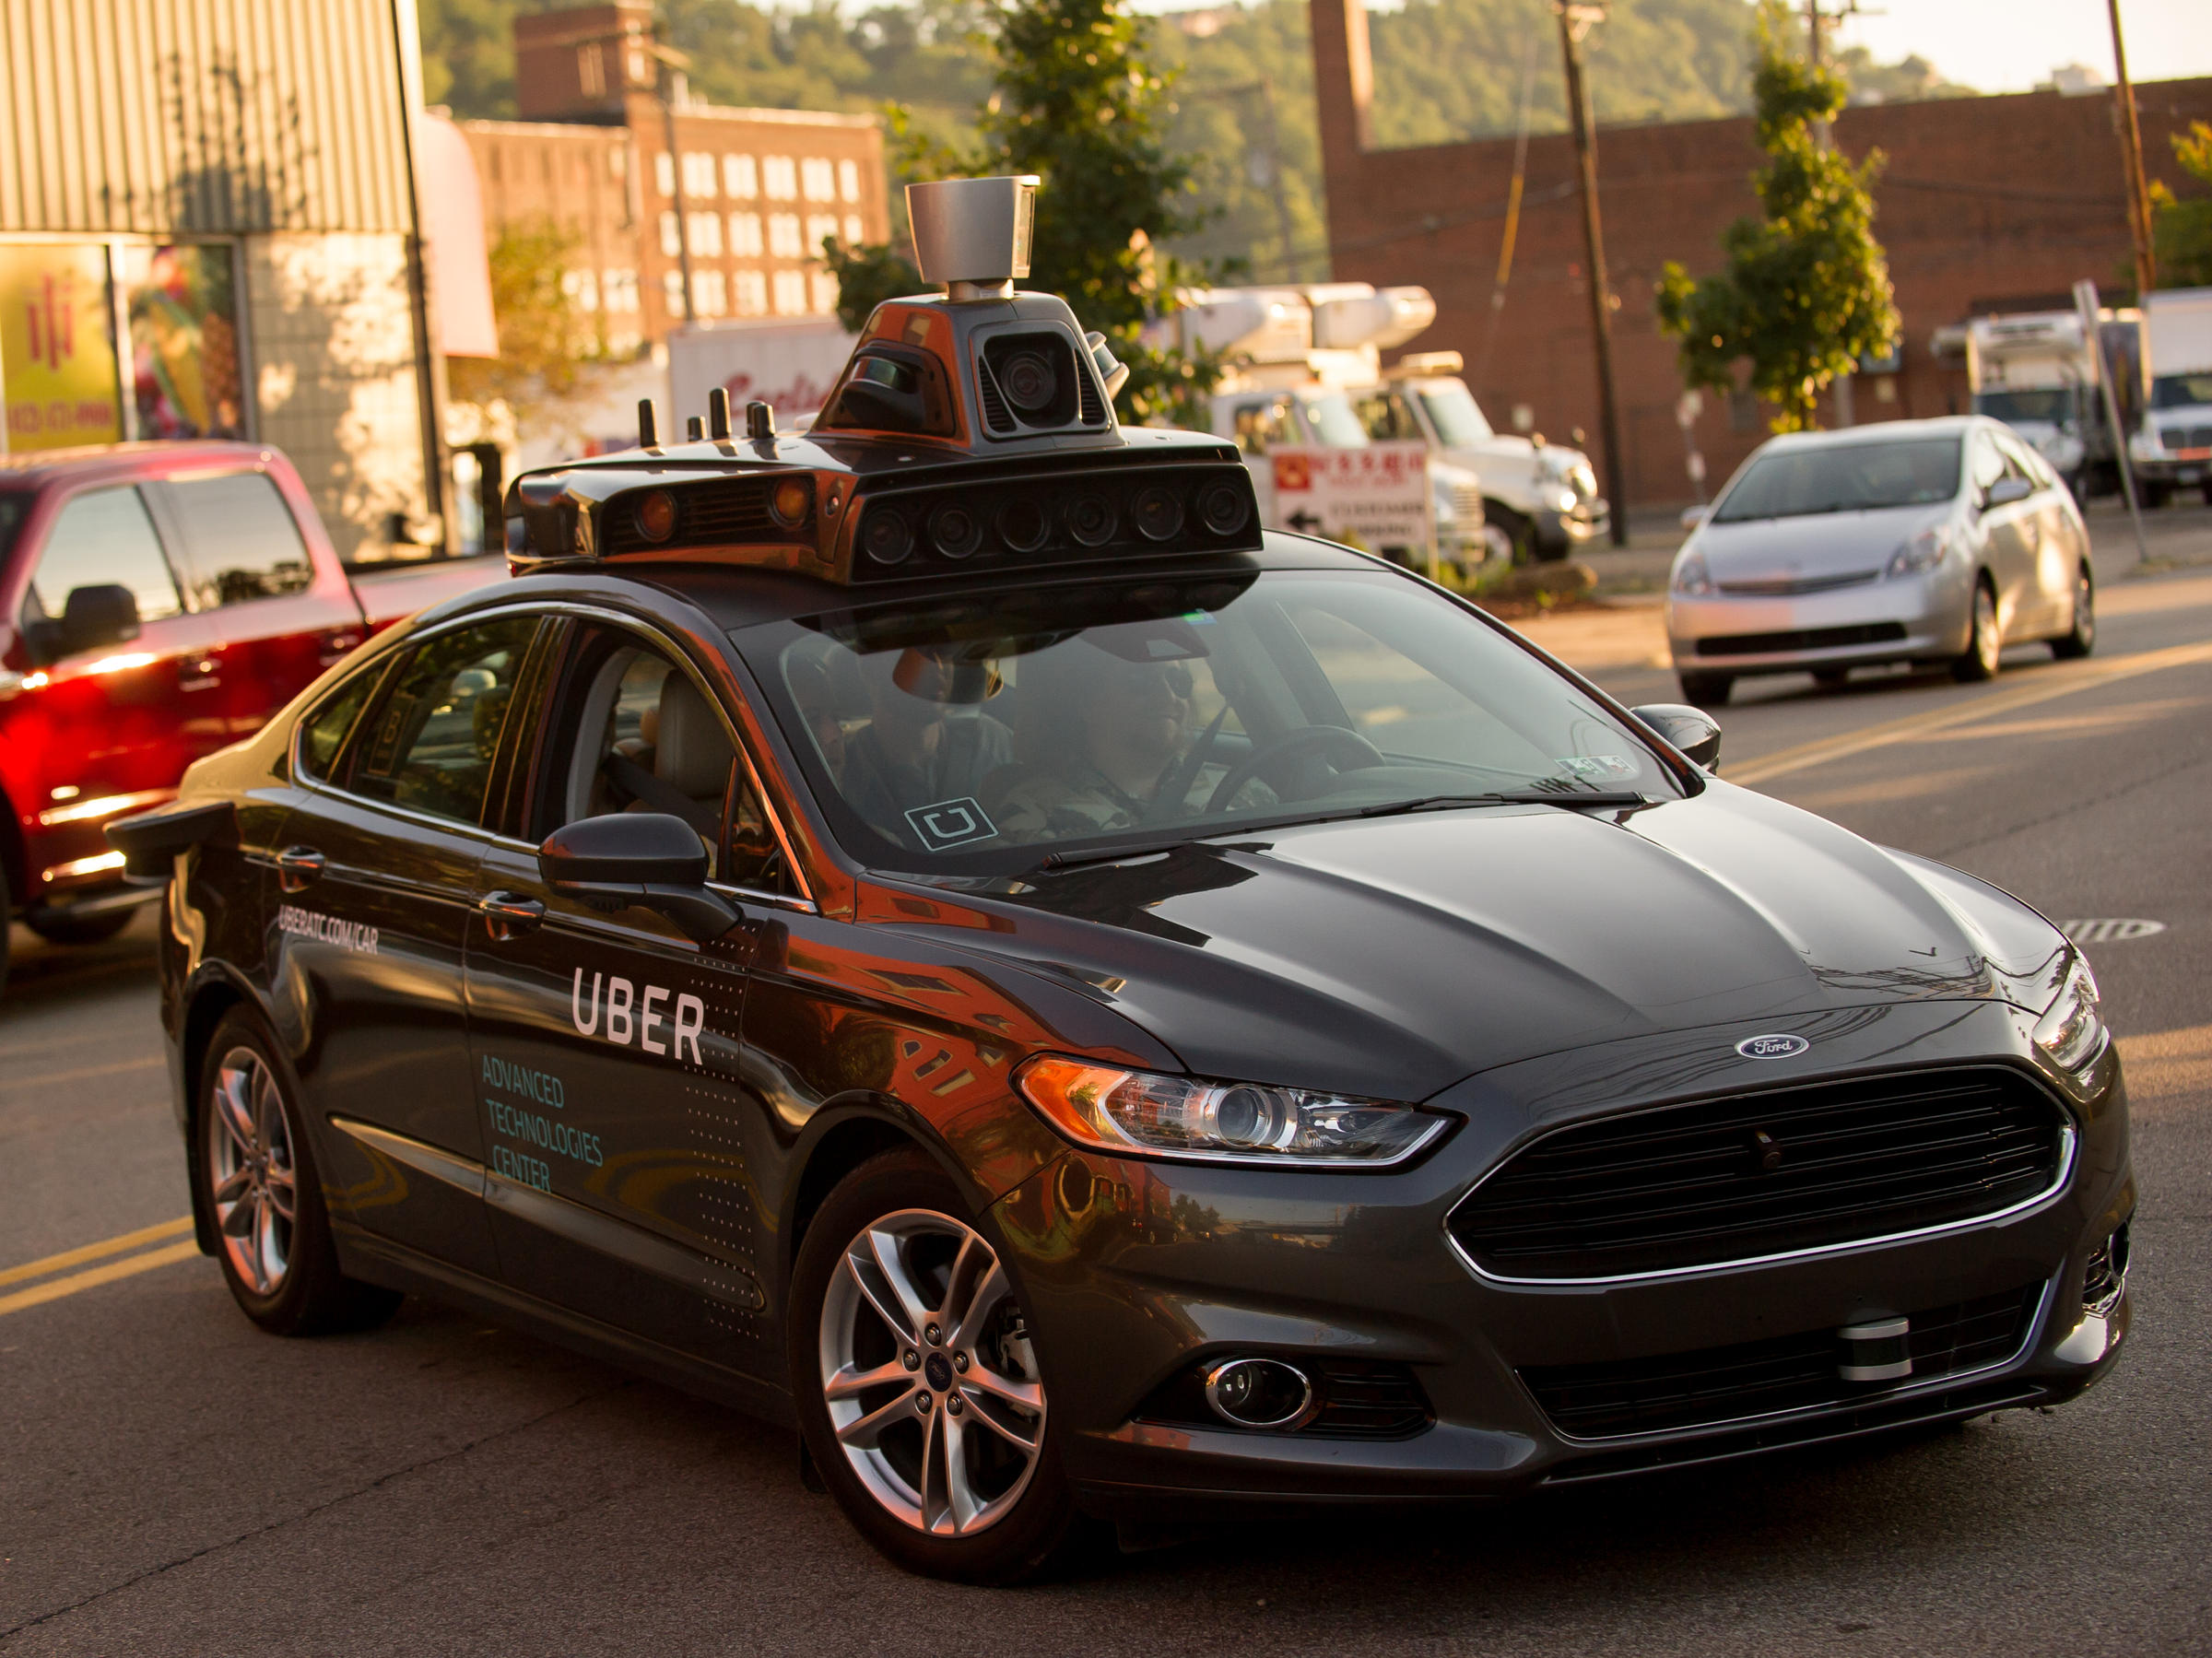 Waymo and Uber reach settlement in trade secret case